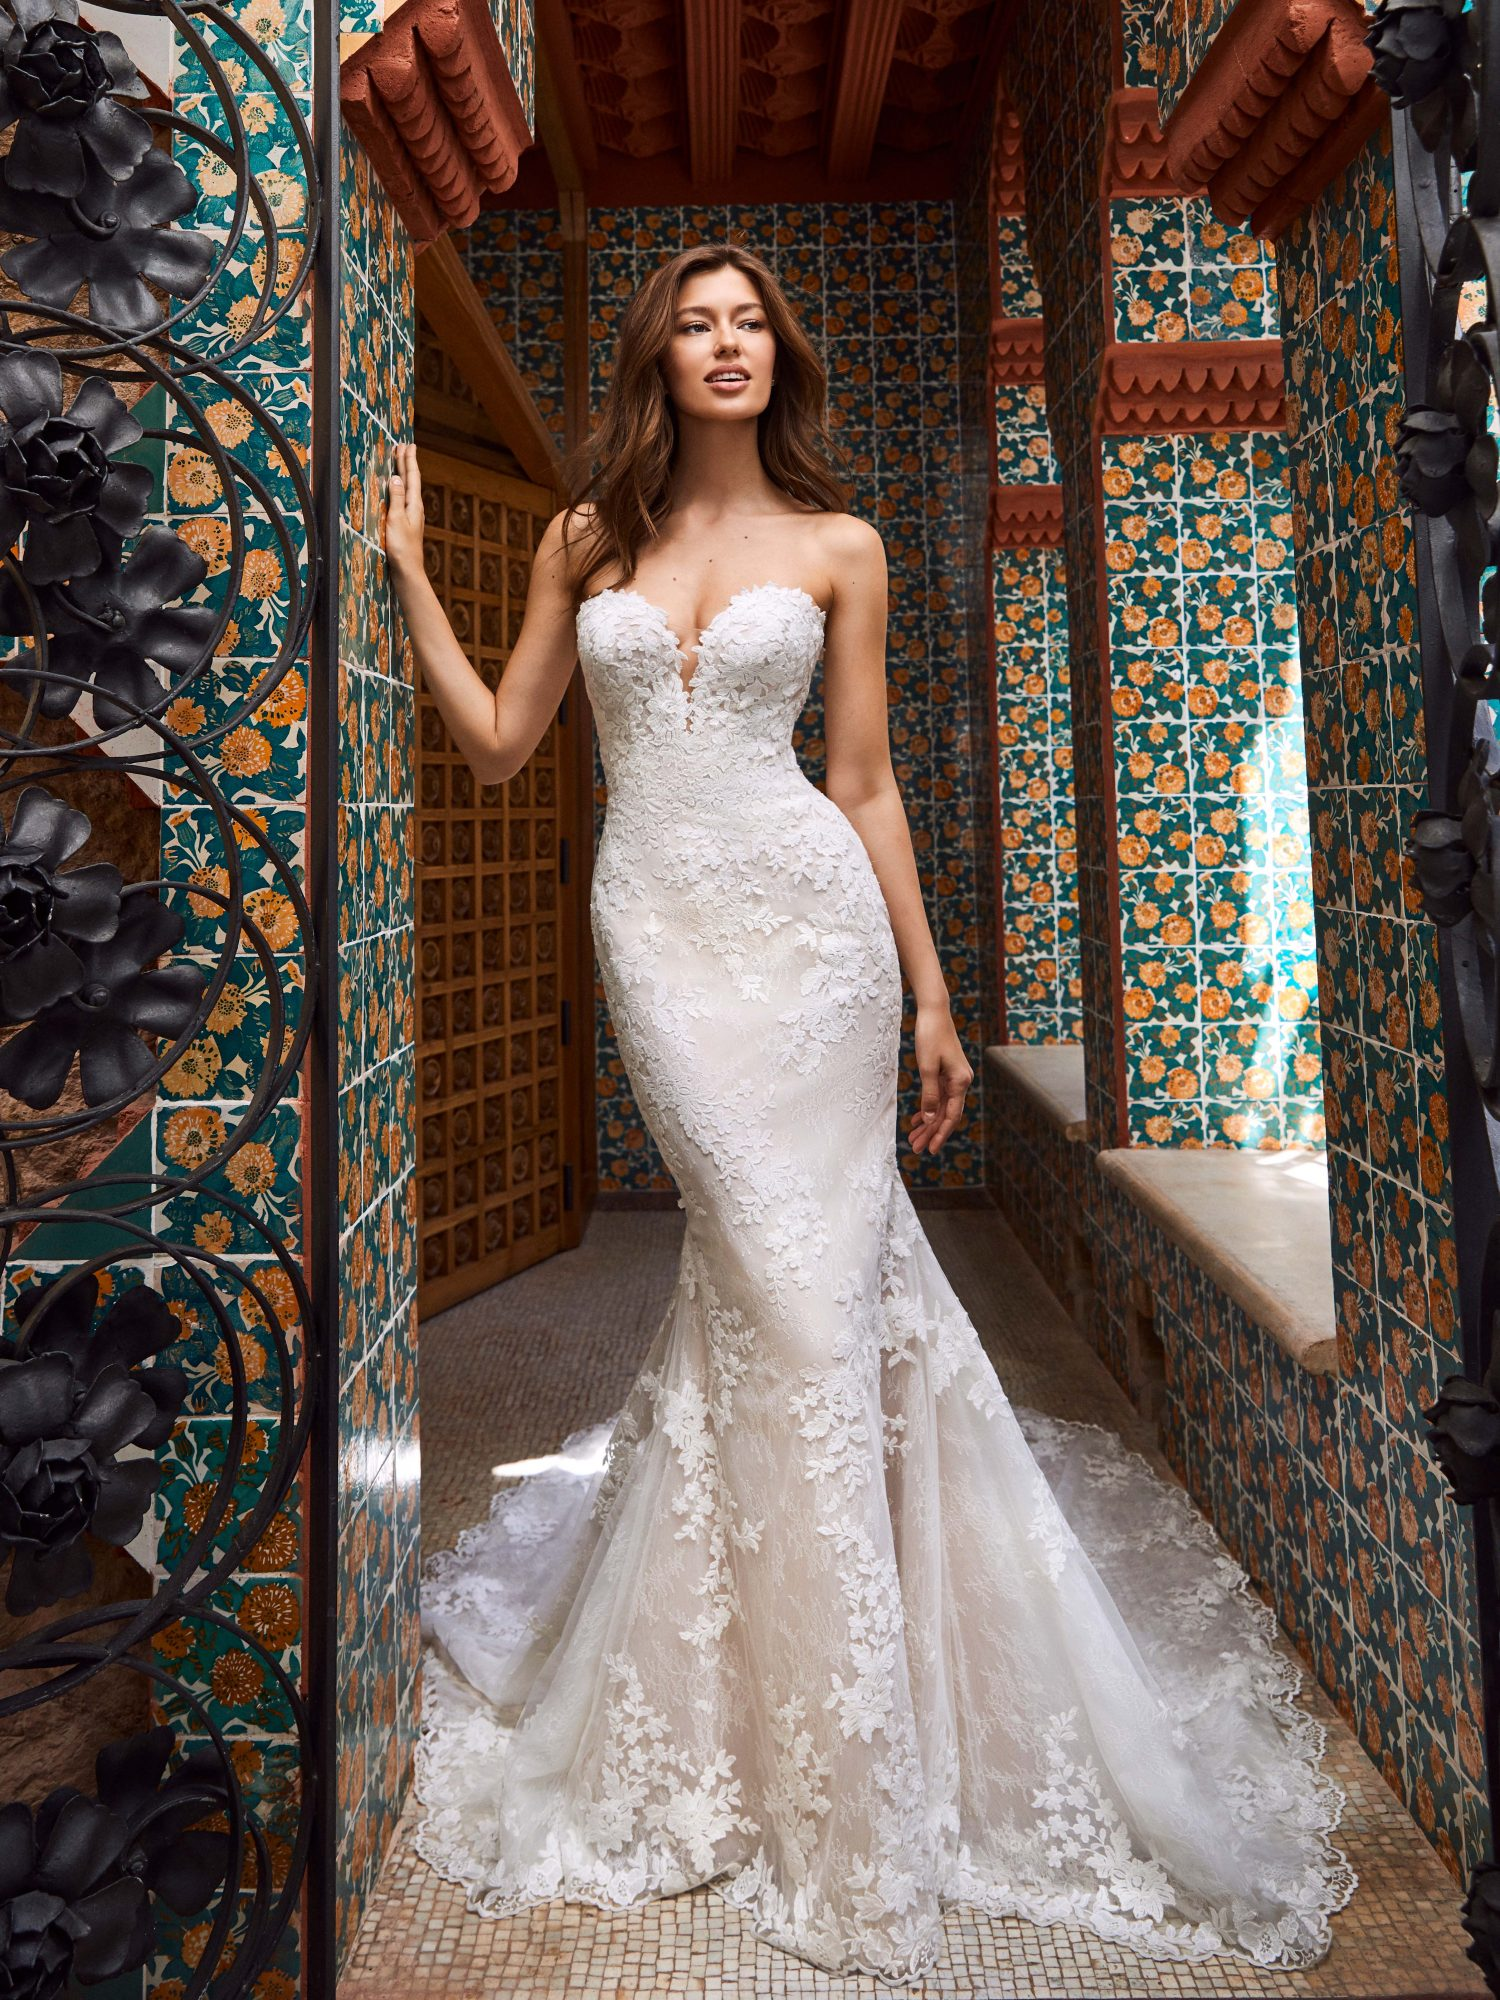 pronovias kleinfeld wedding dress fall 2019 04